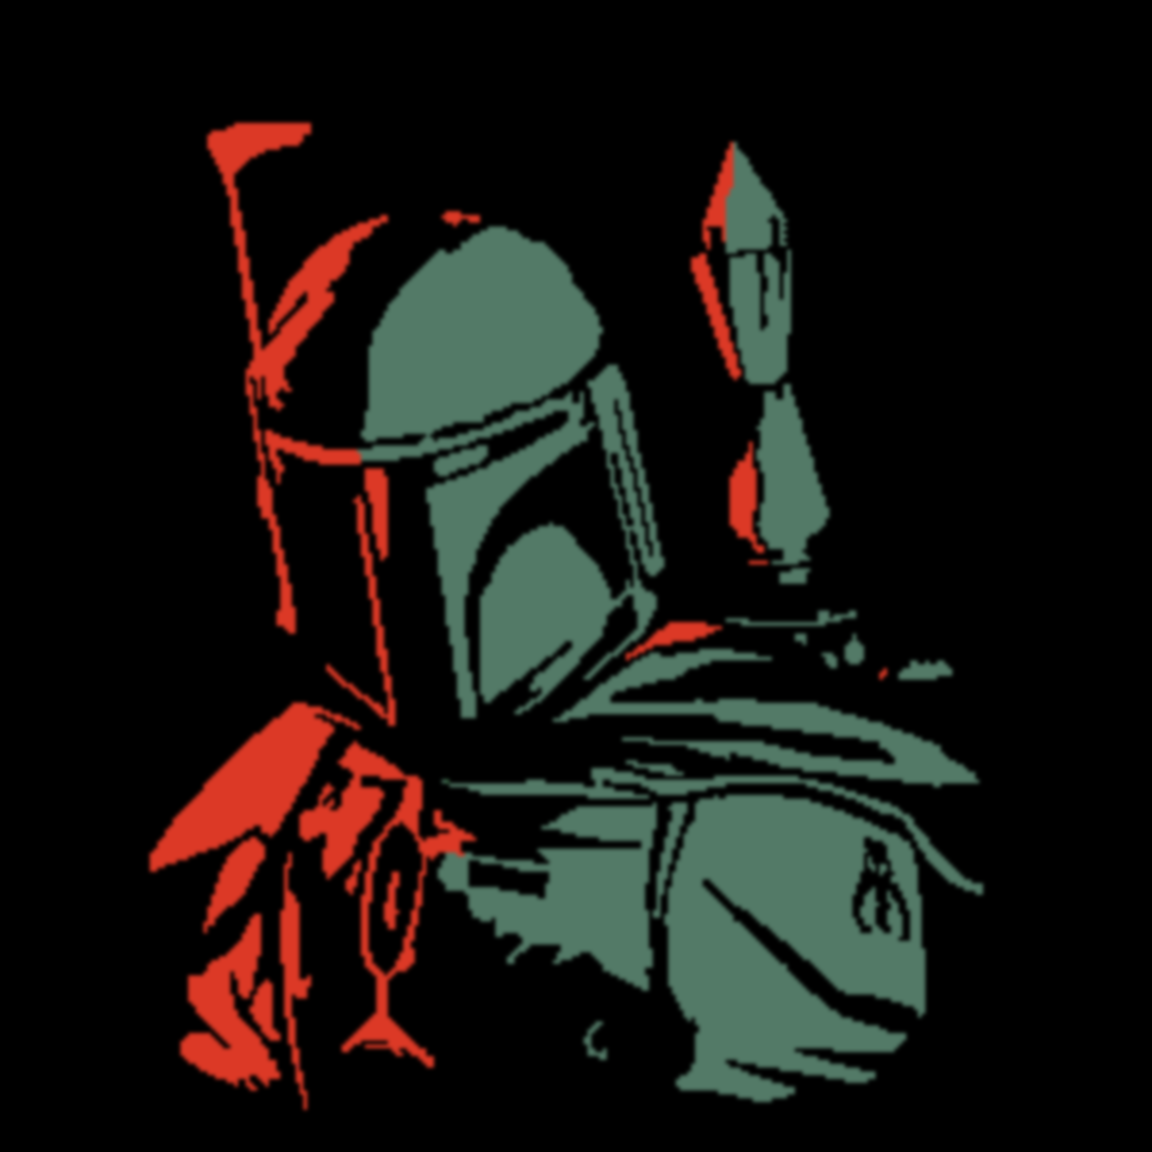 Boba Fett Symbol Wallpapers Icons Fonts Pictures Boba